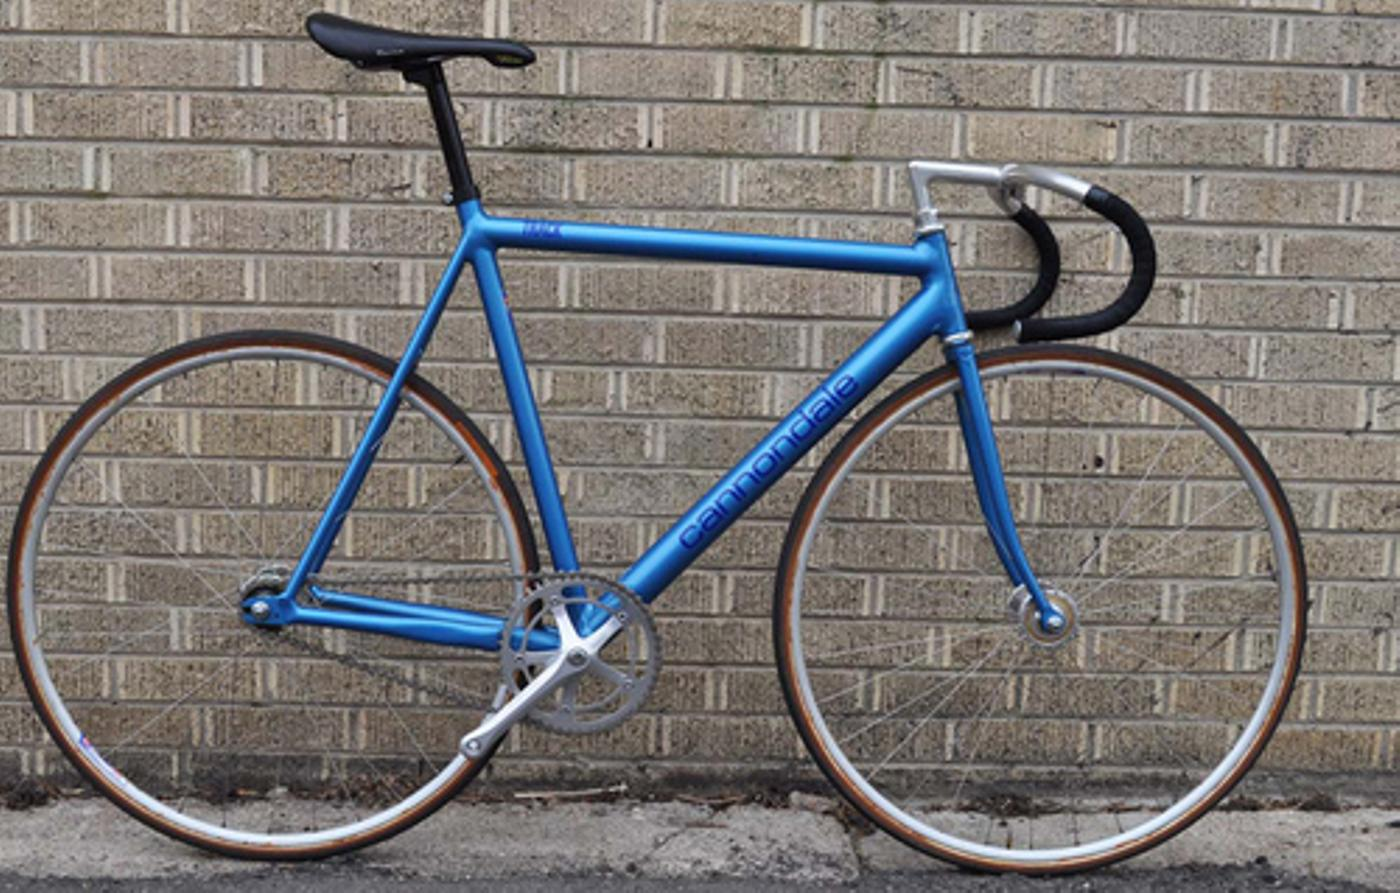 93_Cannondale_Track_profile_800px.jpg